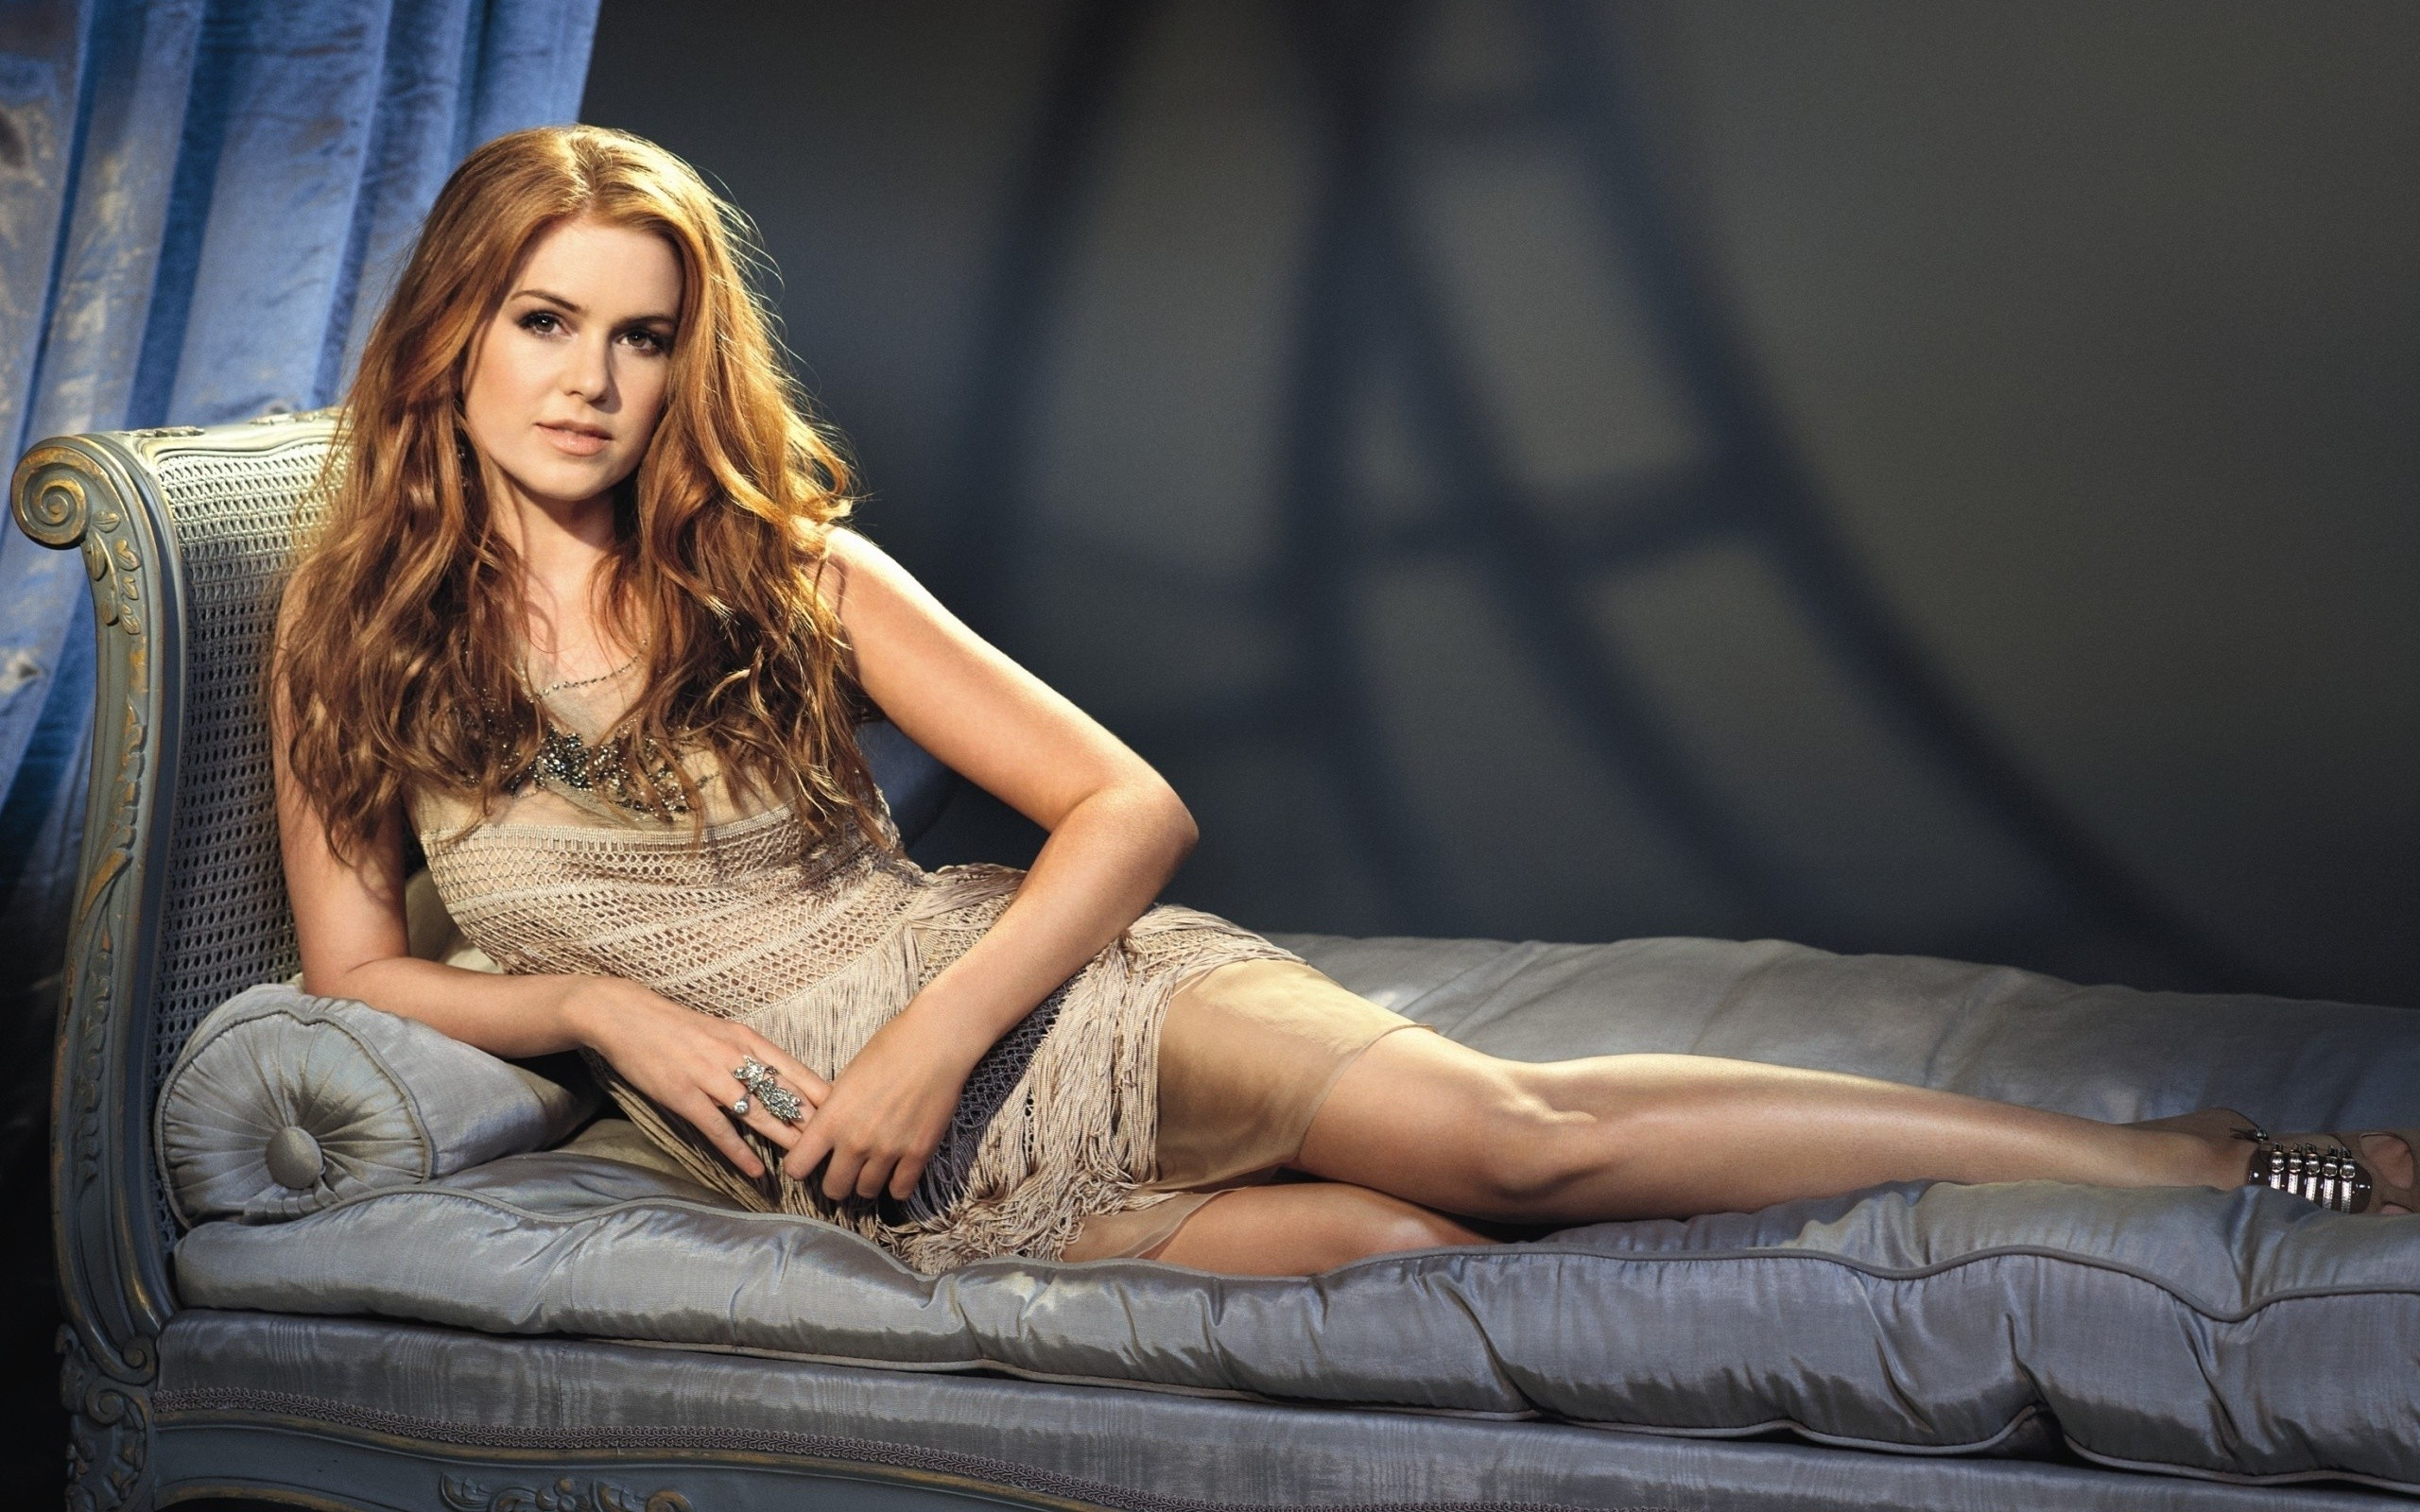 Sexy Isla Fisher Photos Near-Nude Isla Fisher Pics